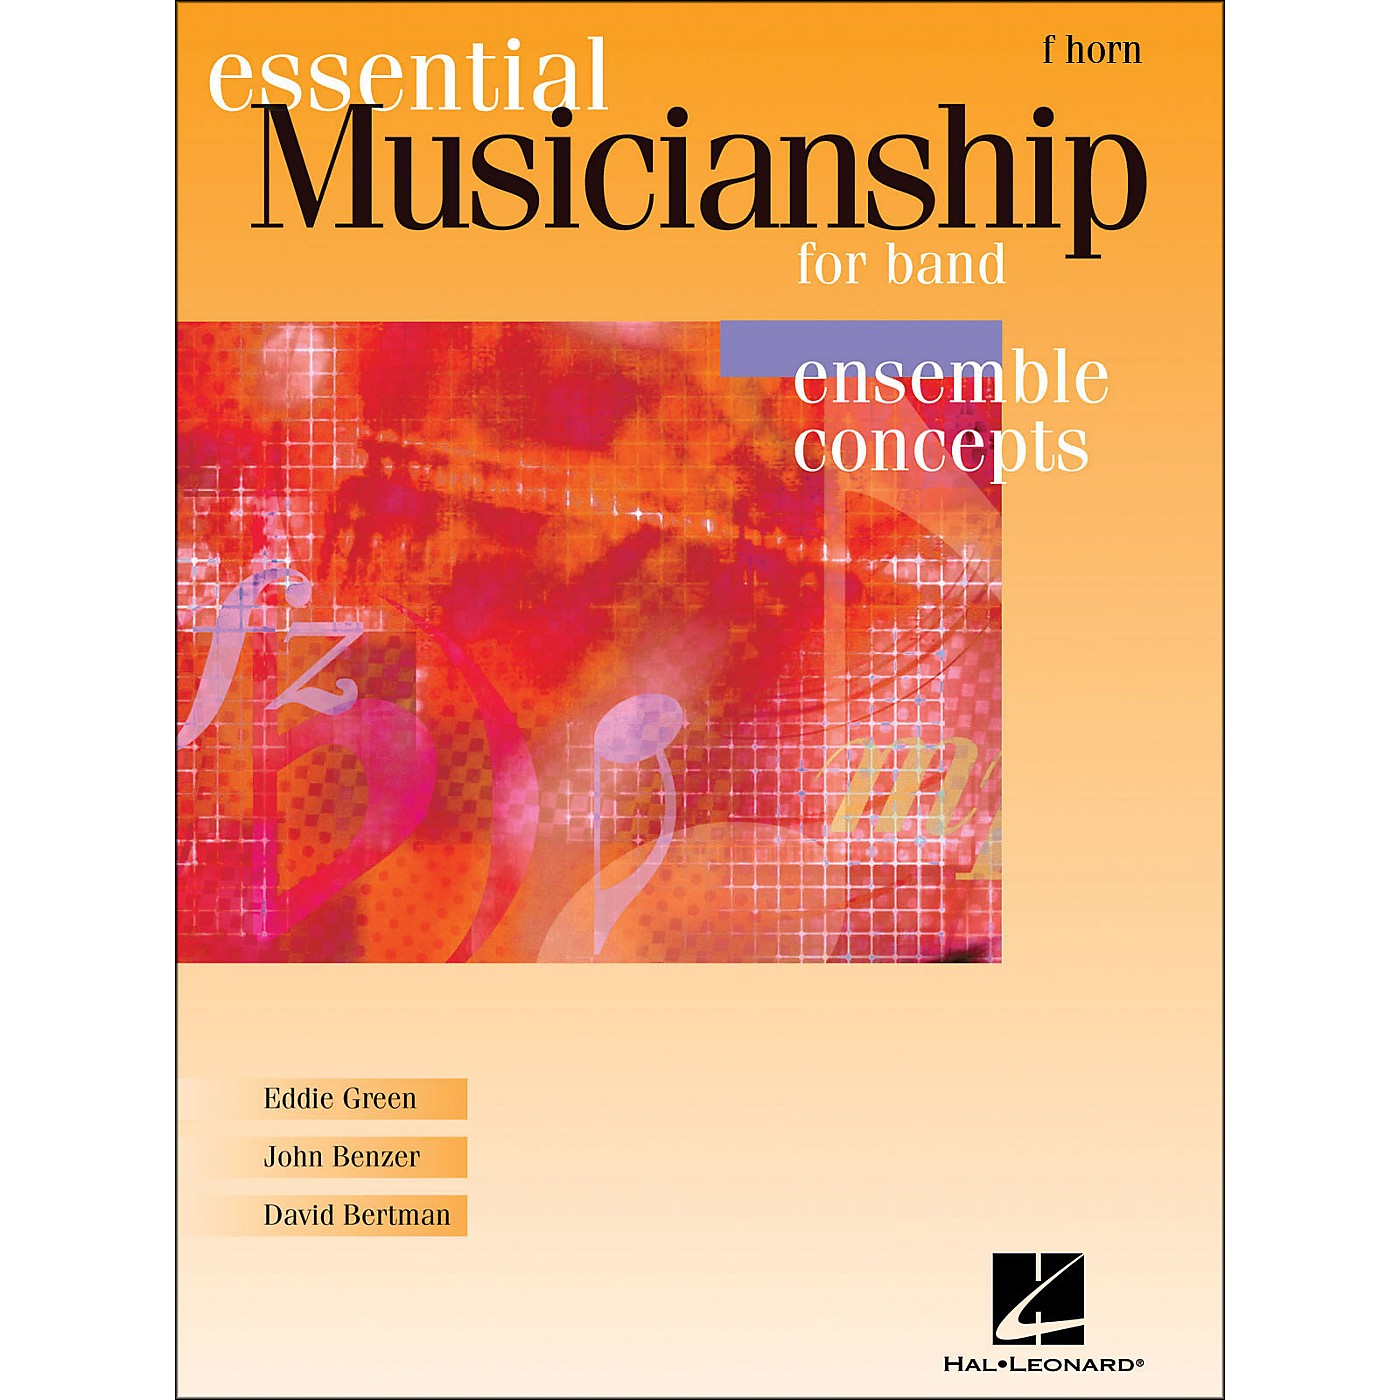 Hal Leonard Essential Musicianship for Band - Ensemble Concepts French Horn thumbnail